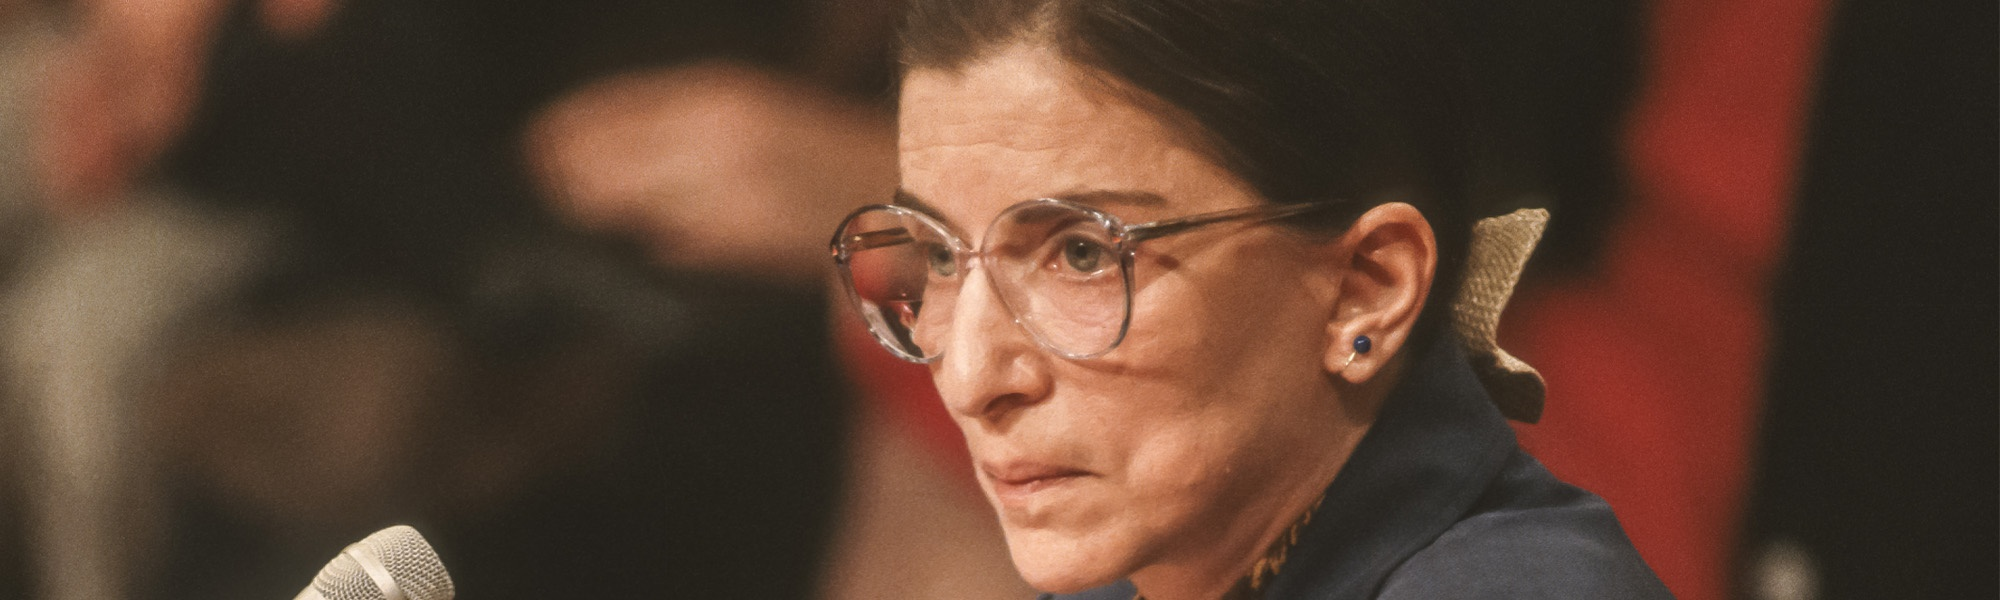 Ruth Bader, C Rob Crandall, Shutterstock